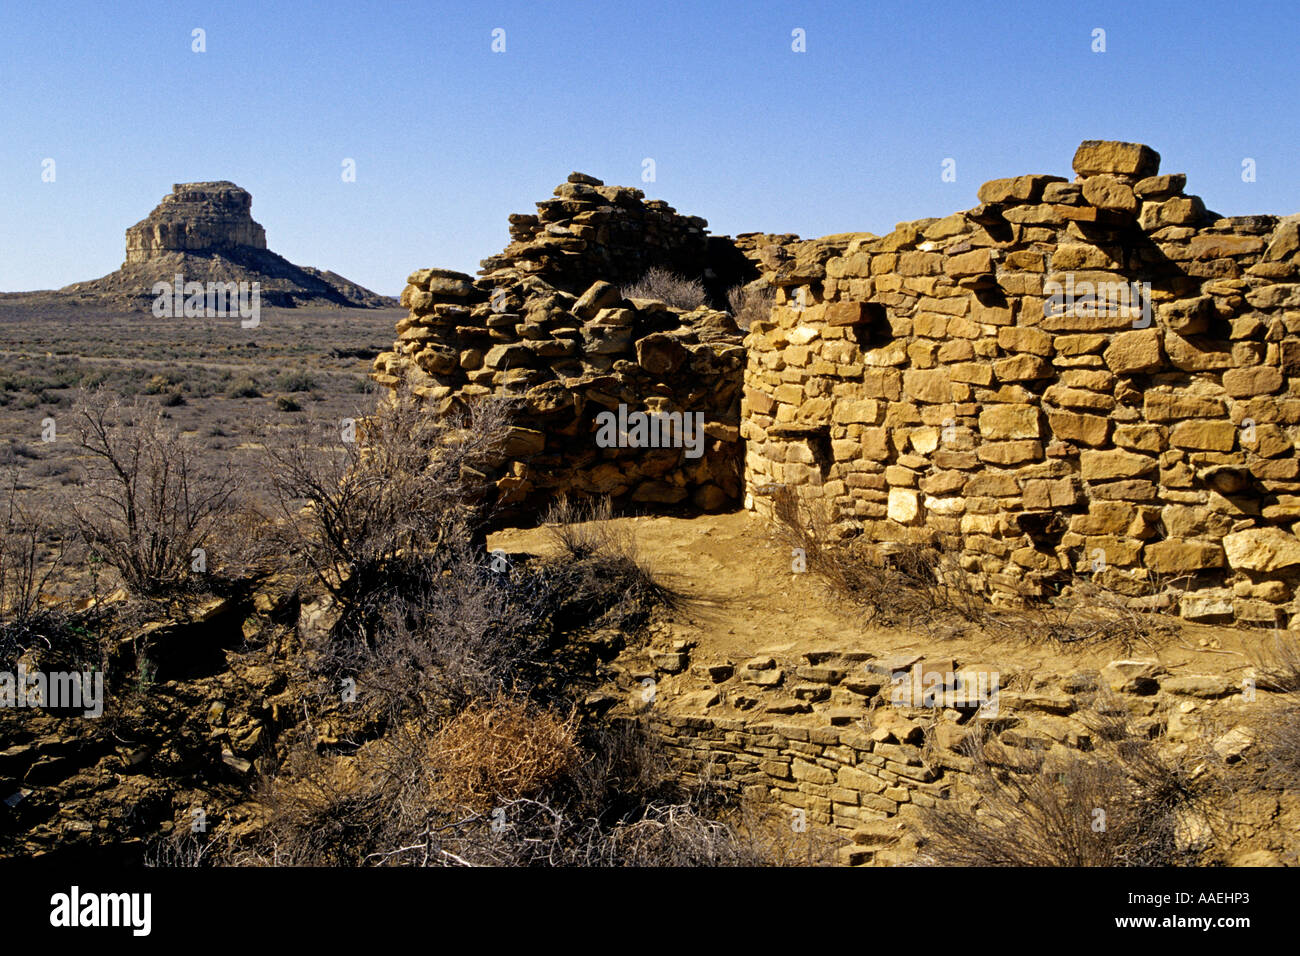 Una Vida Fajada Butte is a key landmark at Chaco Culture National Historical Park, Chaco Canyon, New Mexico USA - Stock Image